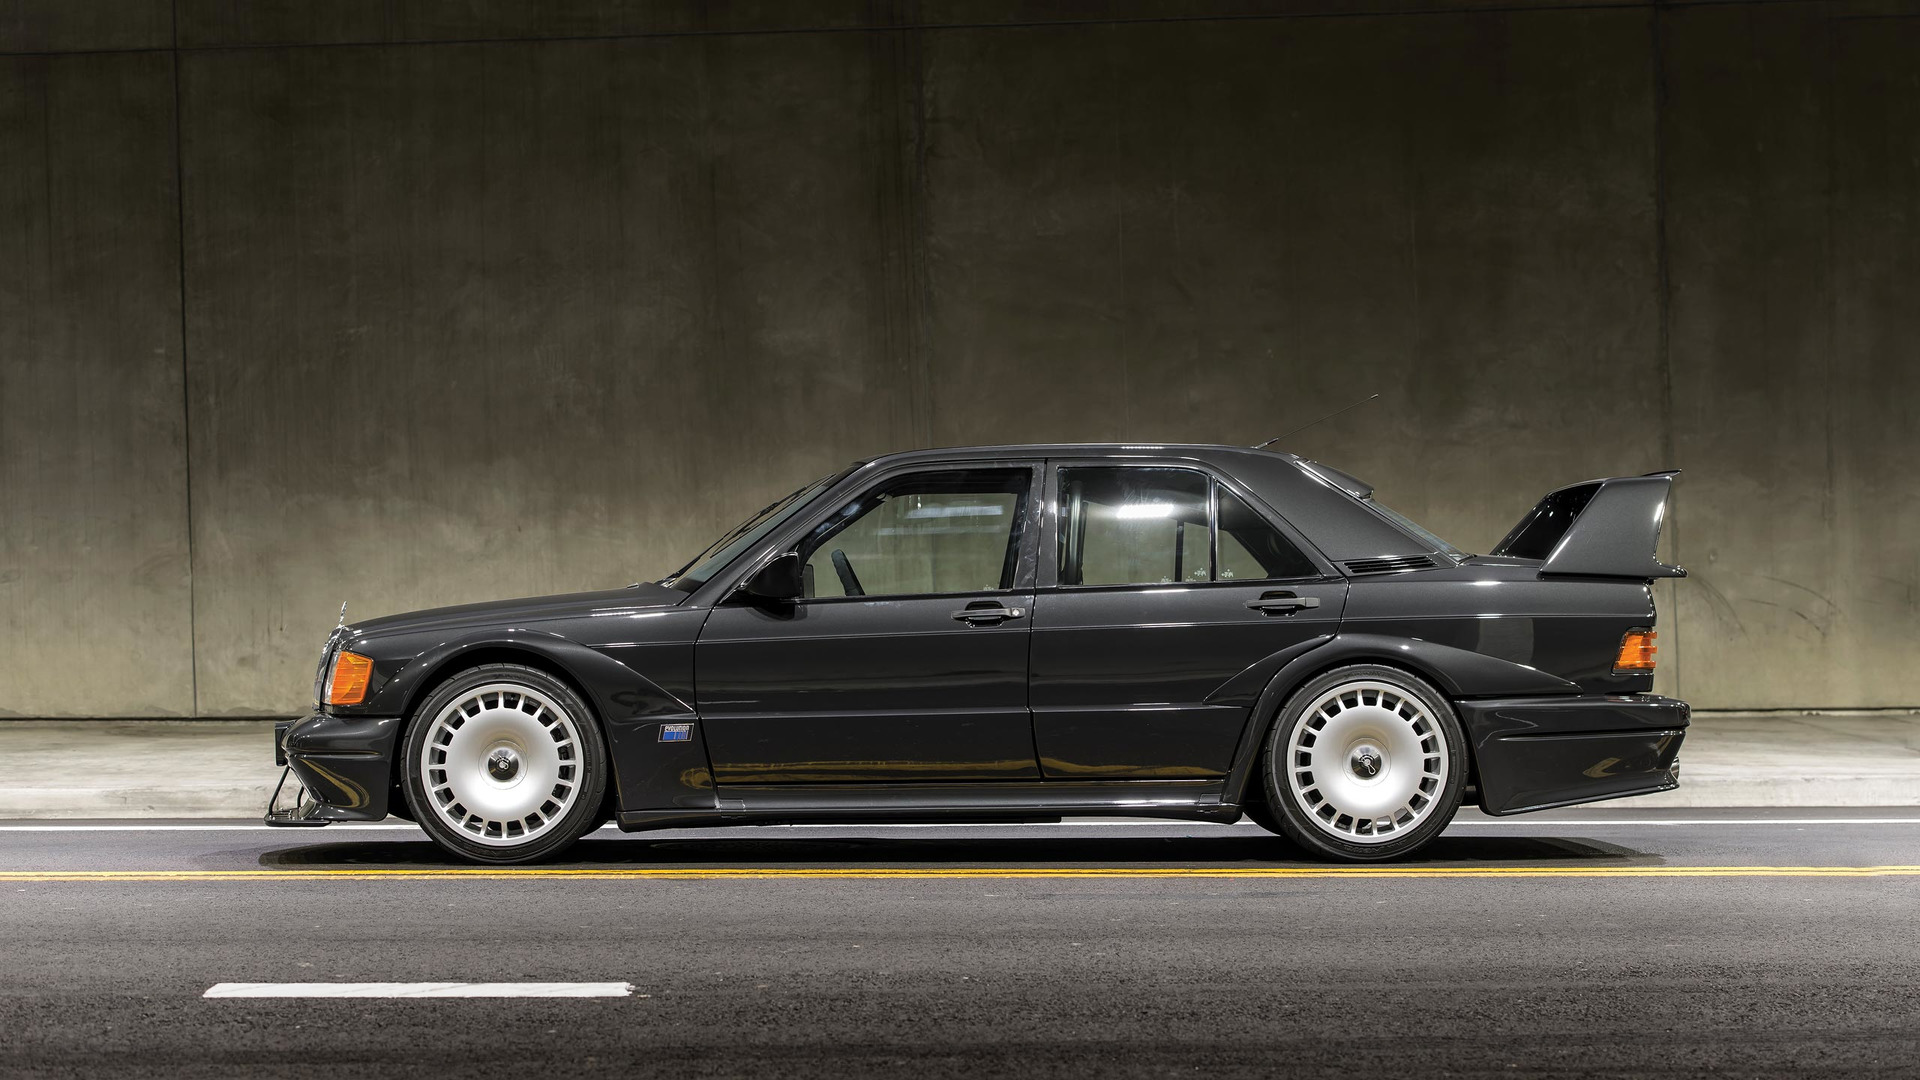 First Mercedes 190e Evo Ii Auctioned In U S Sells For Big Money